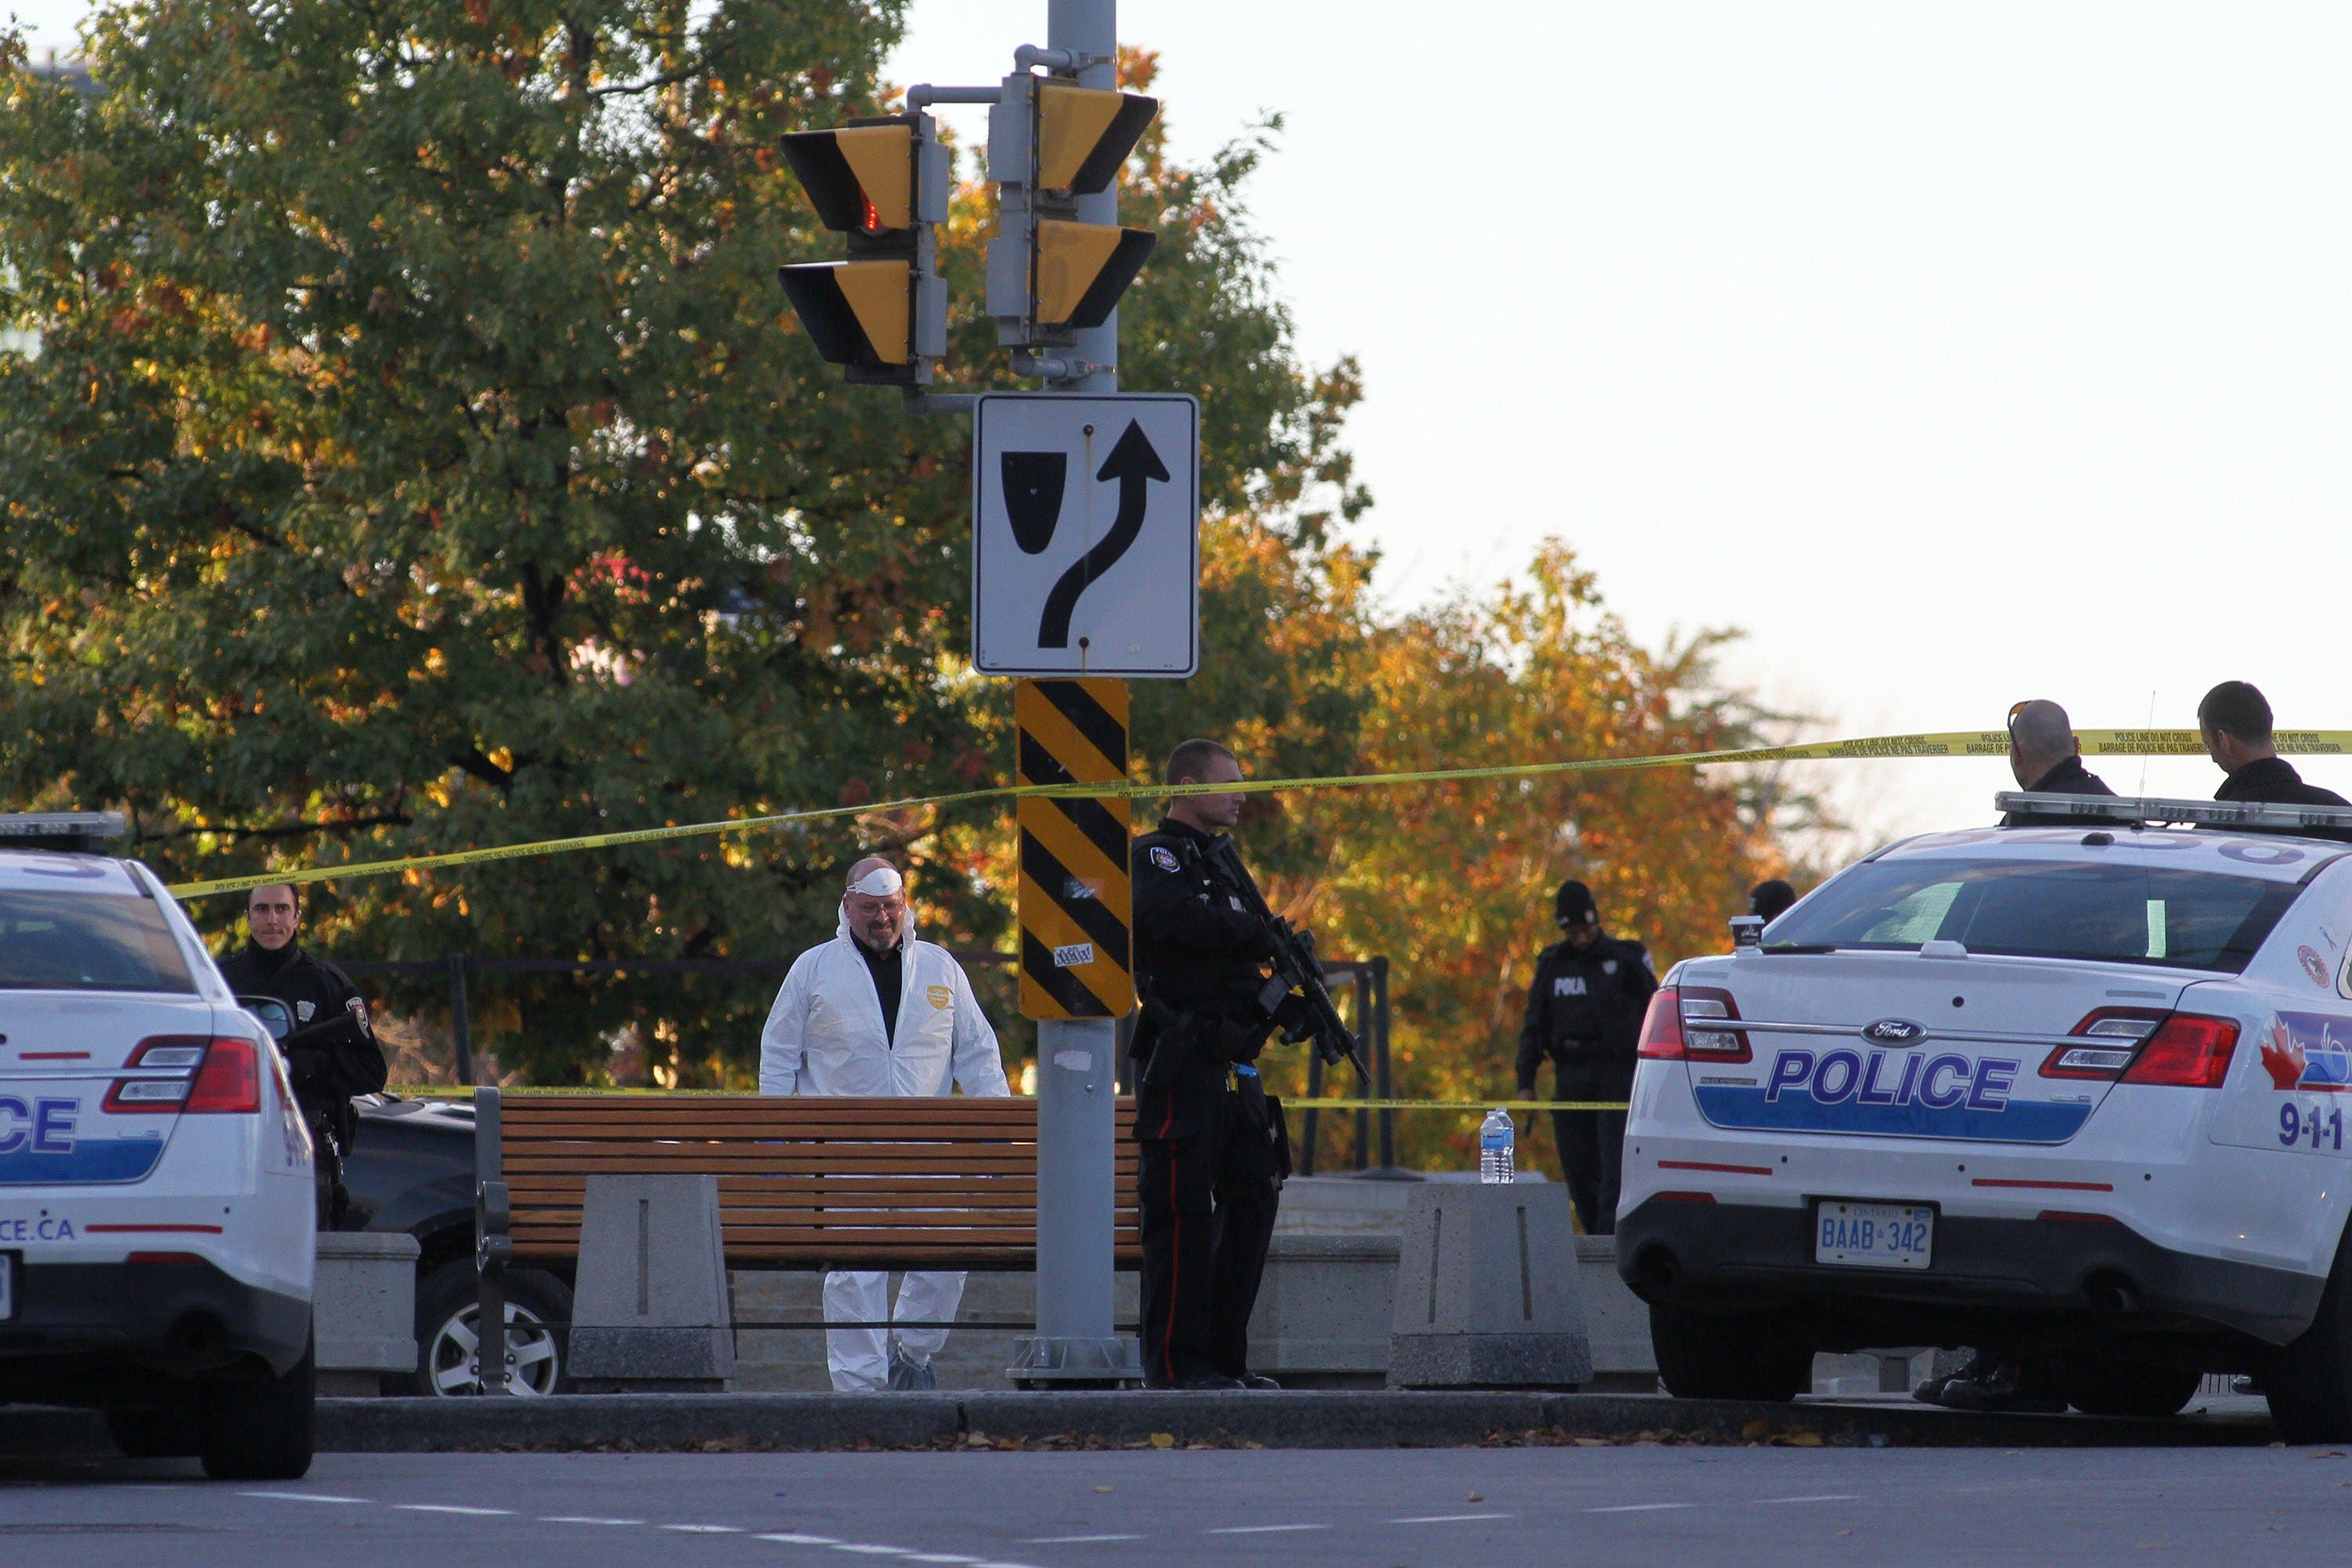 Forensic police officers work near the National War Memorial in Ottawa, Canada on Wednesday October 22, 2014.